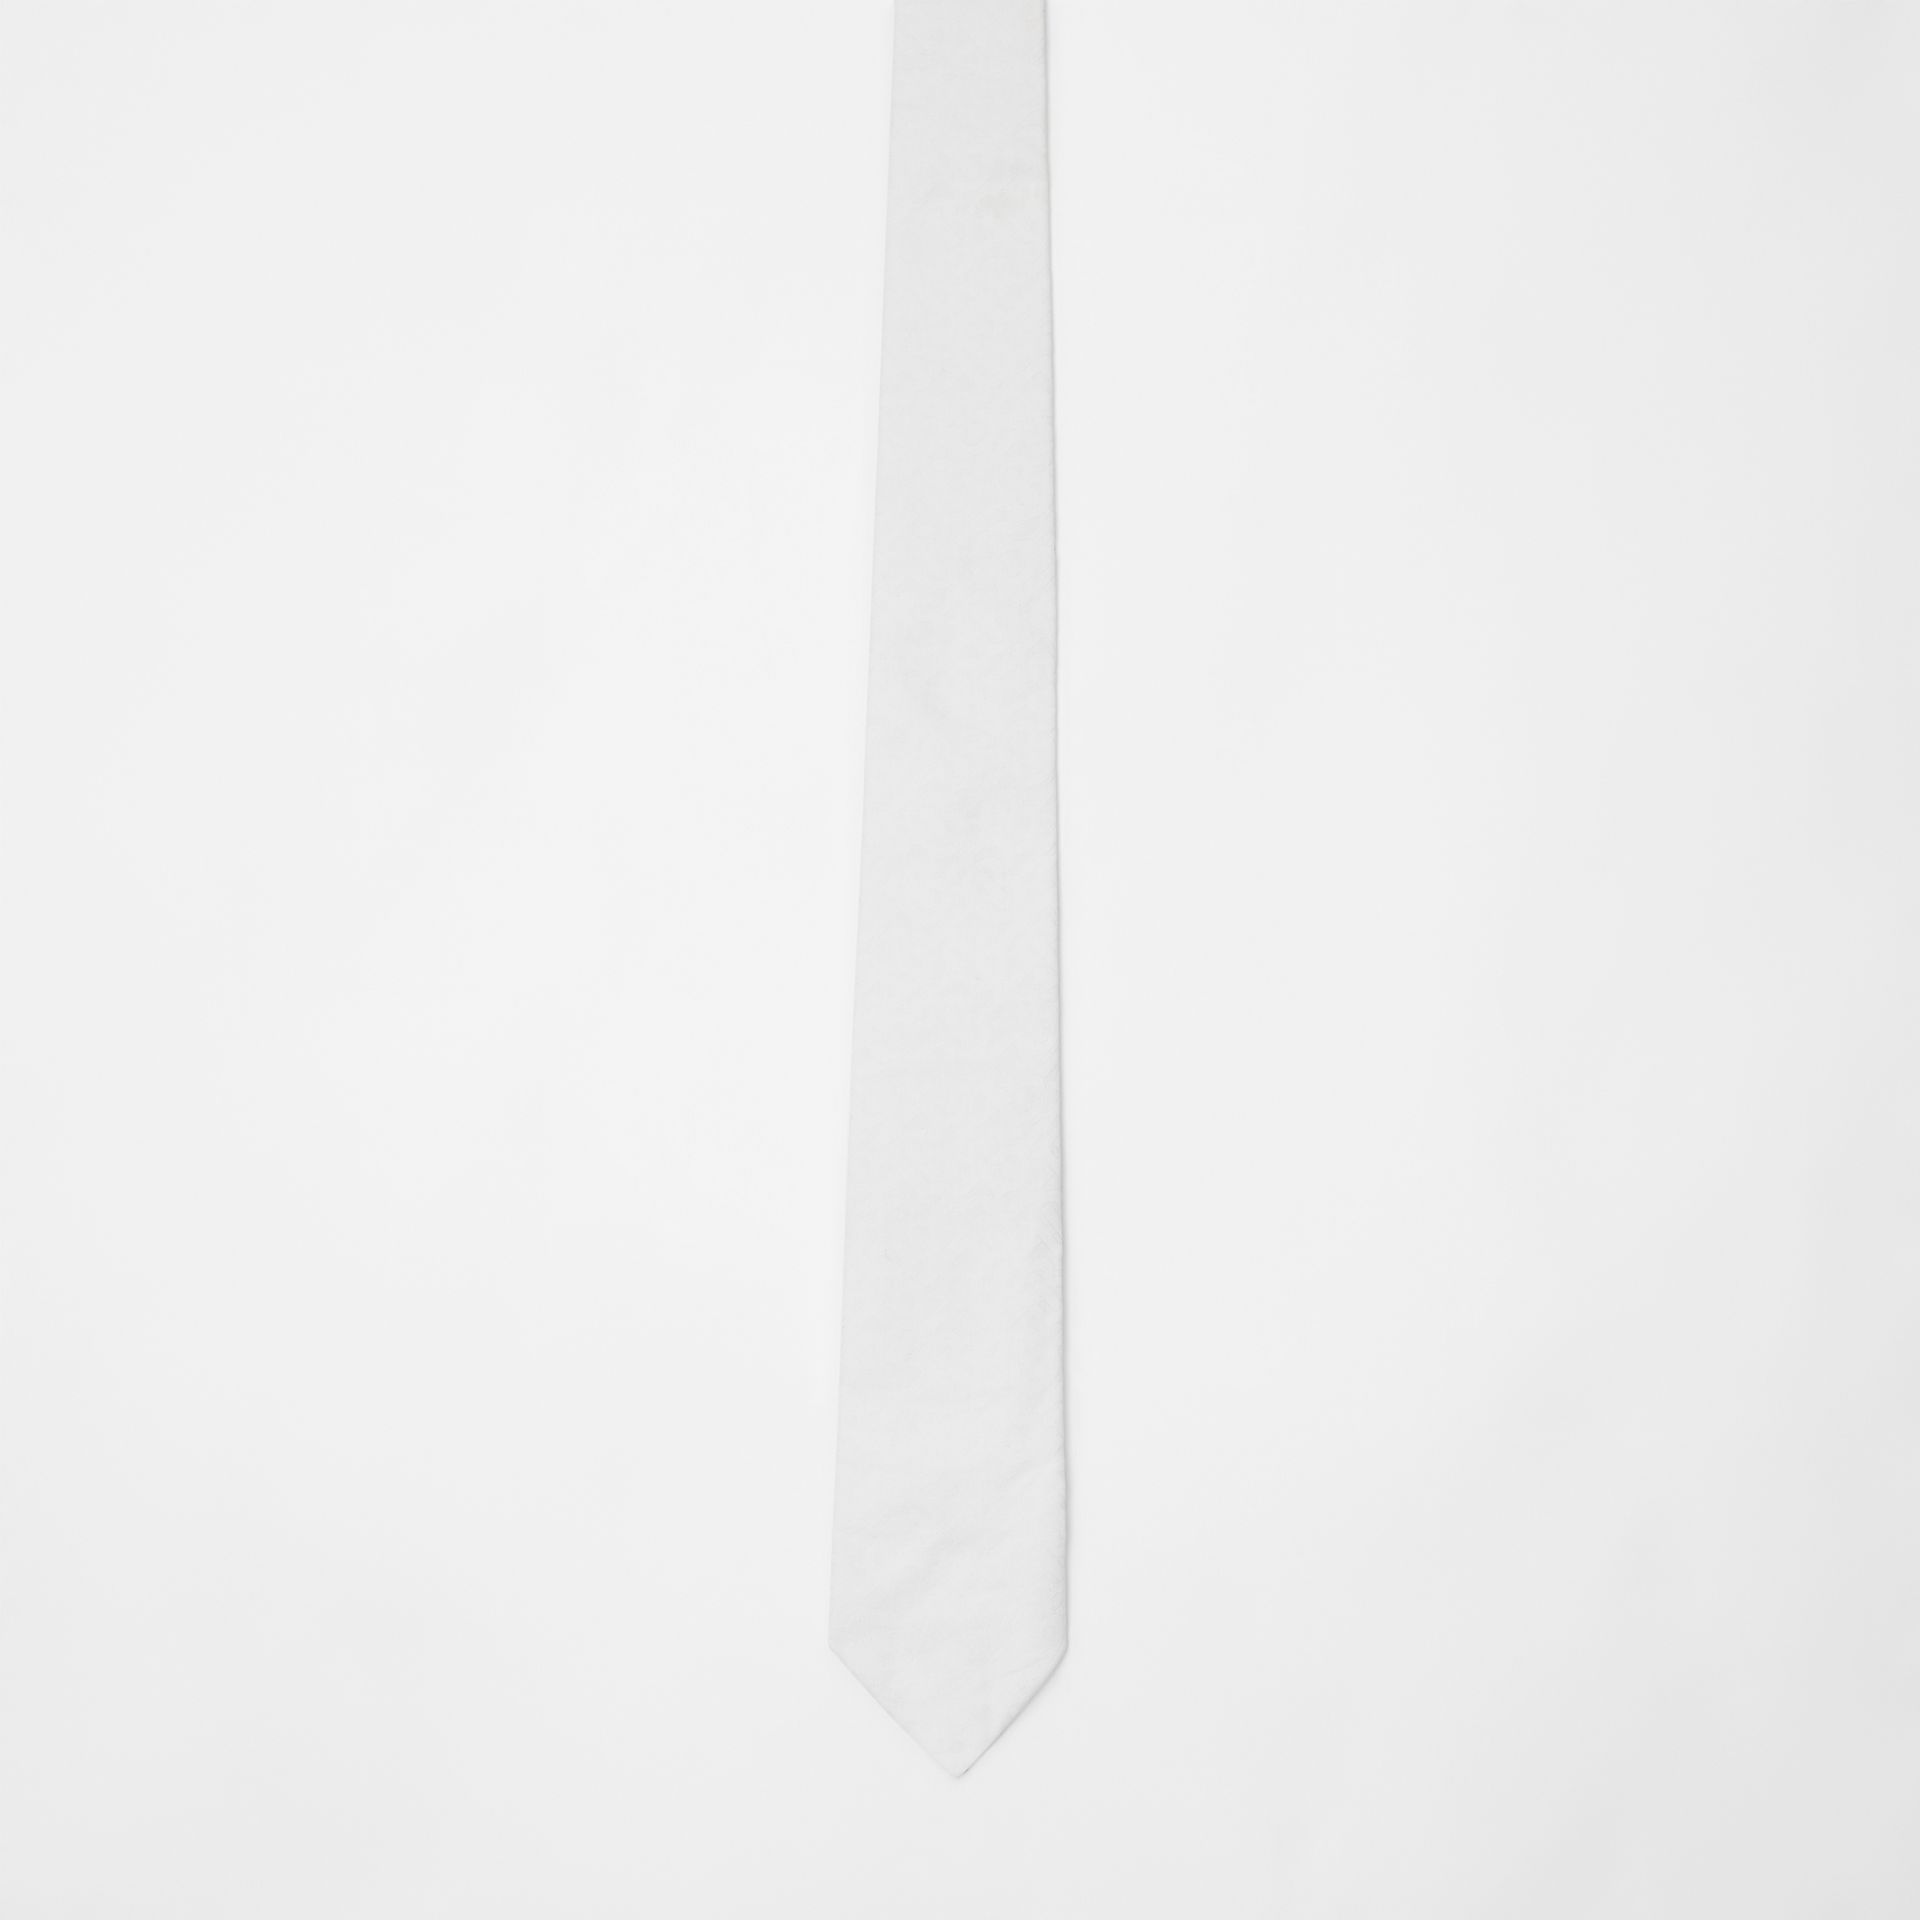 Classic Cut Monogram Silk Jacquard Tie in White - Men | Burberry Canada - gallery image 3